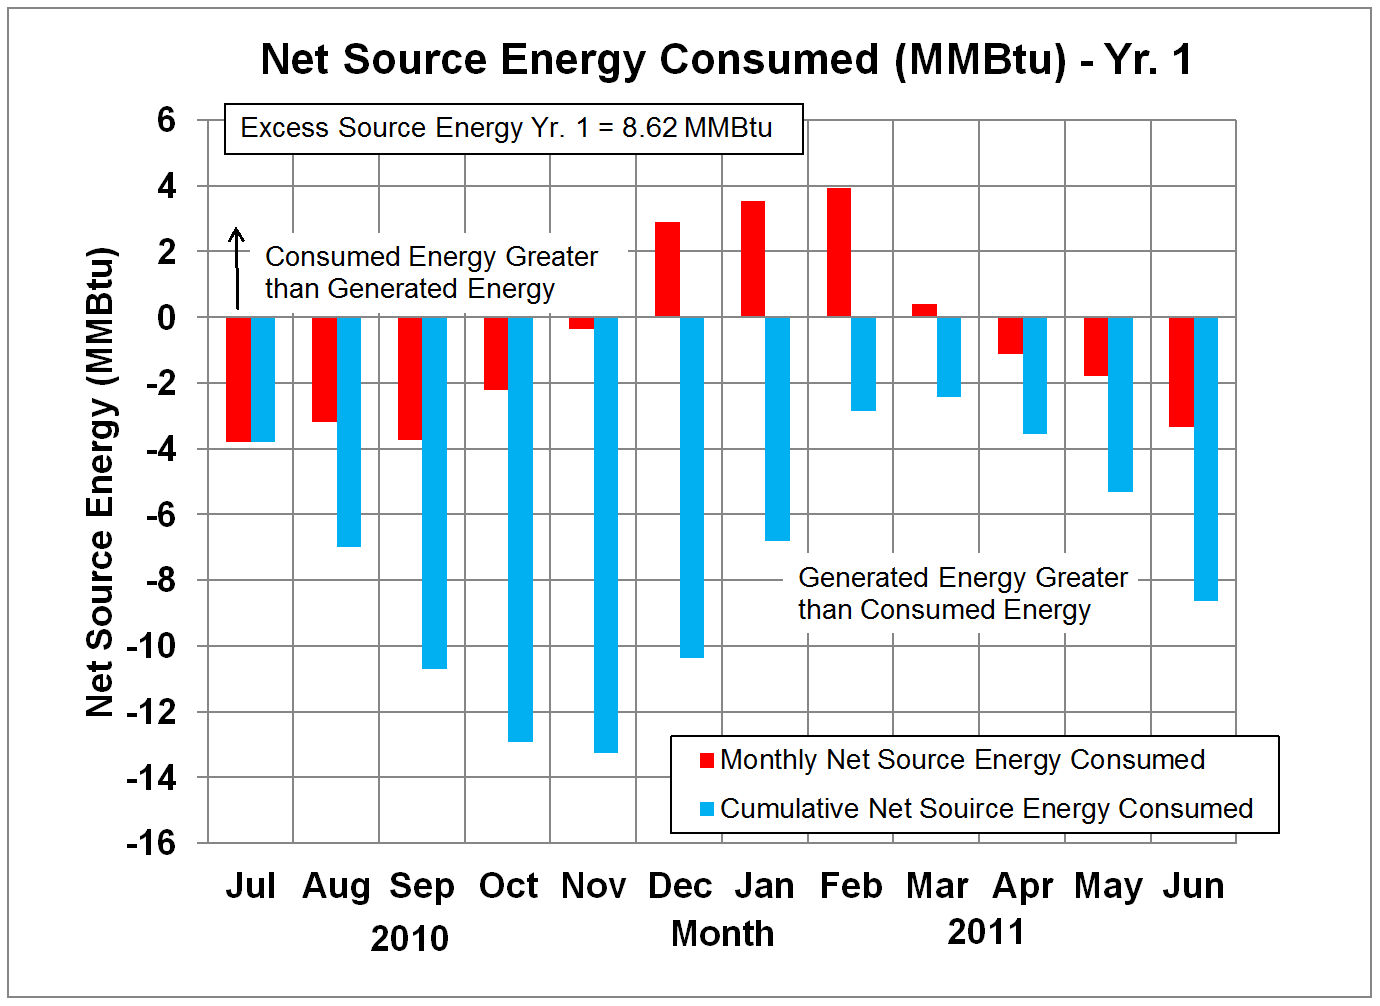 Net Source Energy in Million Btu's - Yr. 1